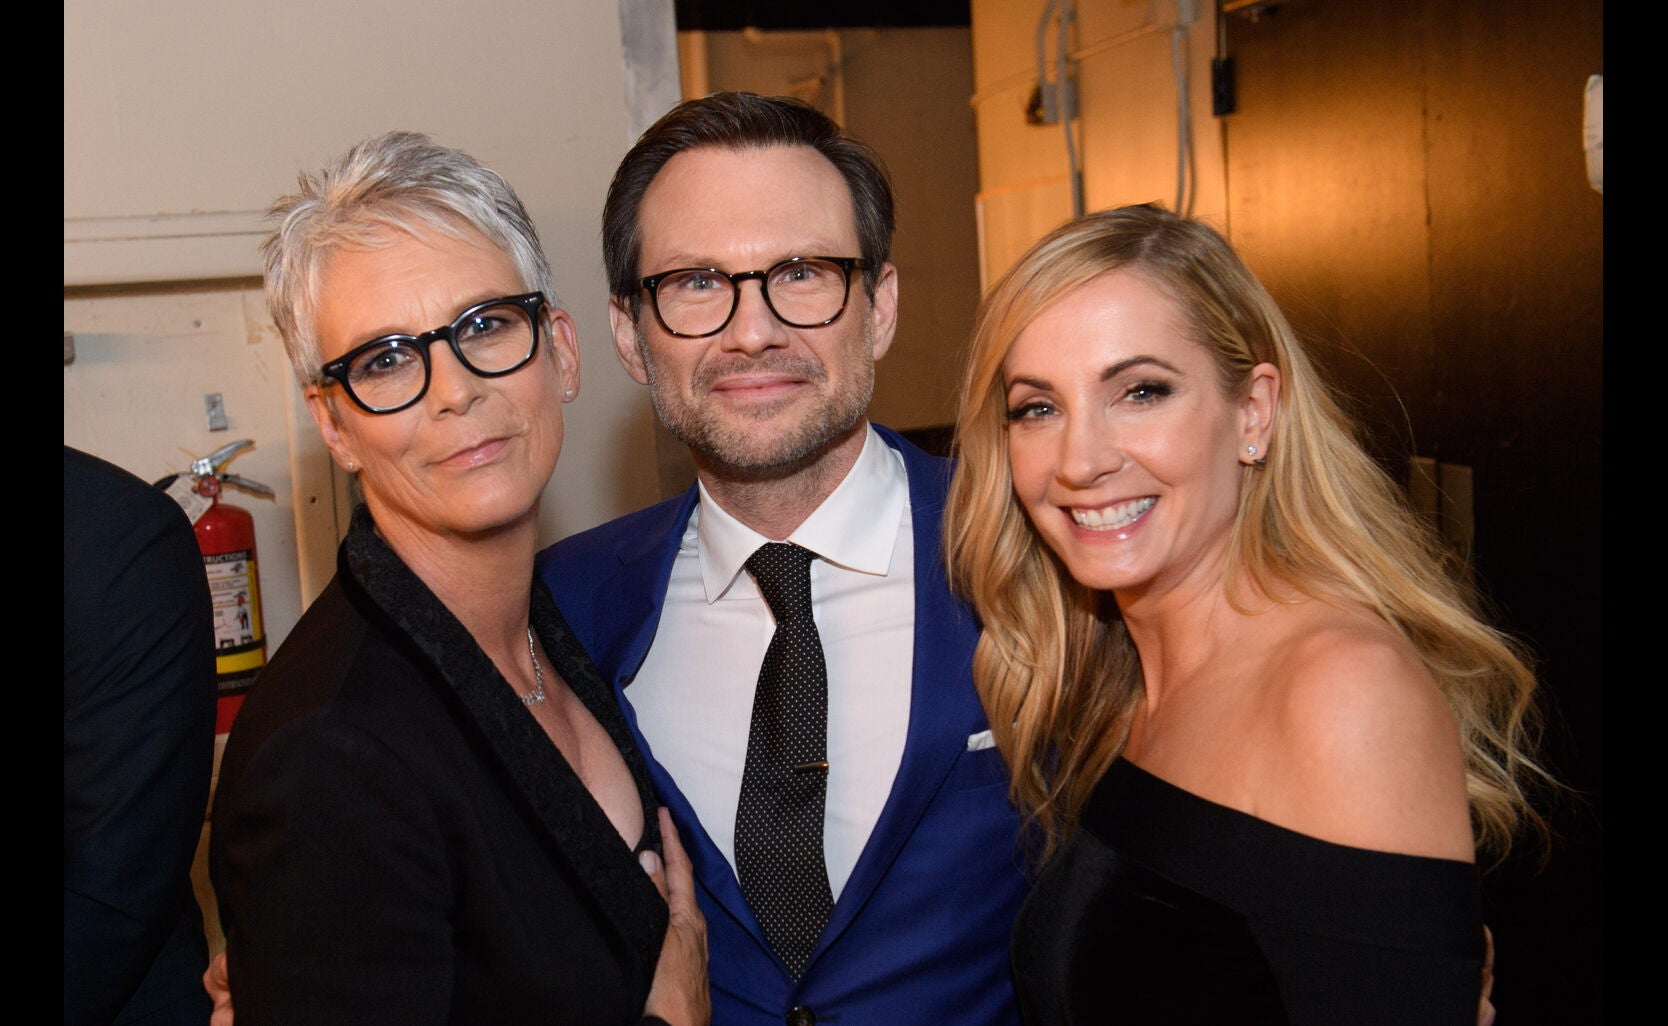 Jamie Lee Curtis, Christian Slater and Joanne Froggatt at the HFPA Grants Banquet 2016